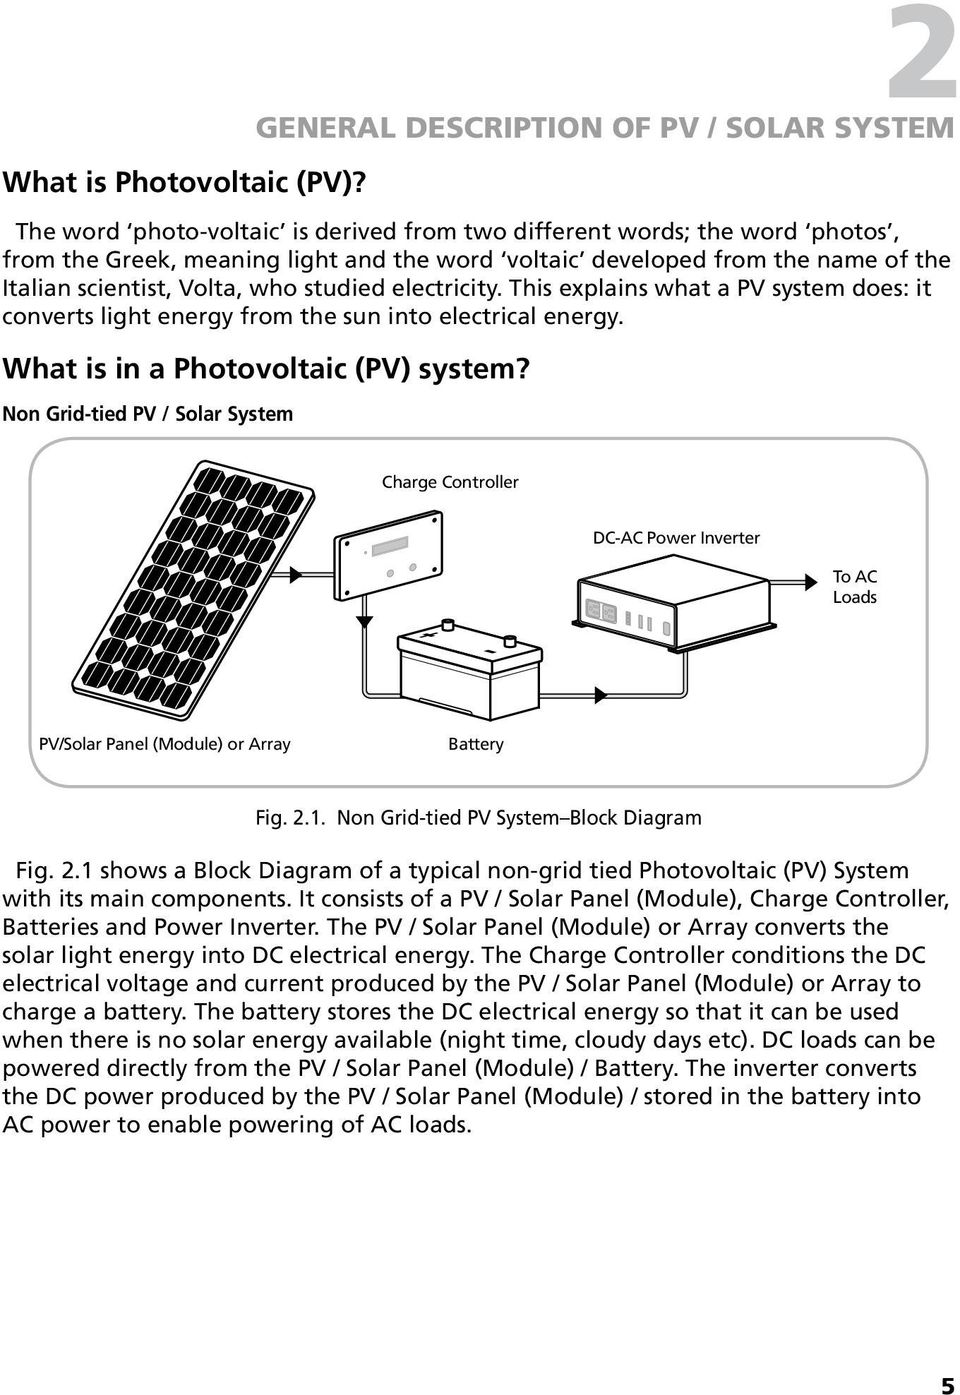 the Italian scientist, Volta, who studied electricity. This explains what a PV system does: it converts light energy from the sun into electrical energy. What is in a Photovoltaic (PV) system?